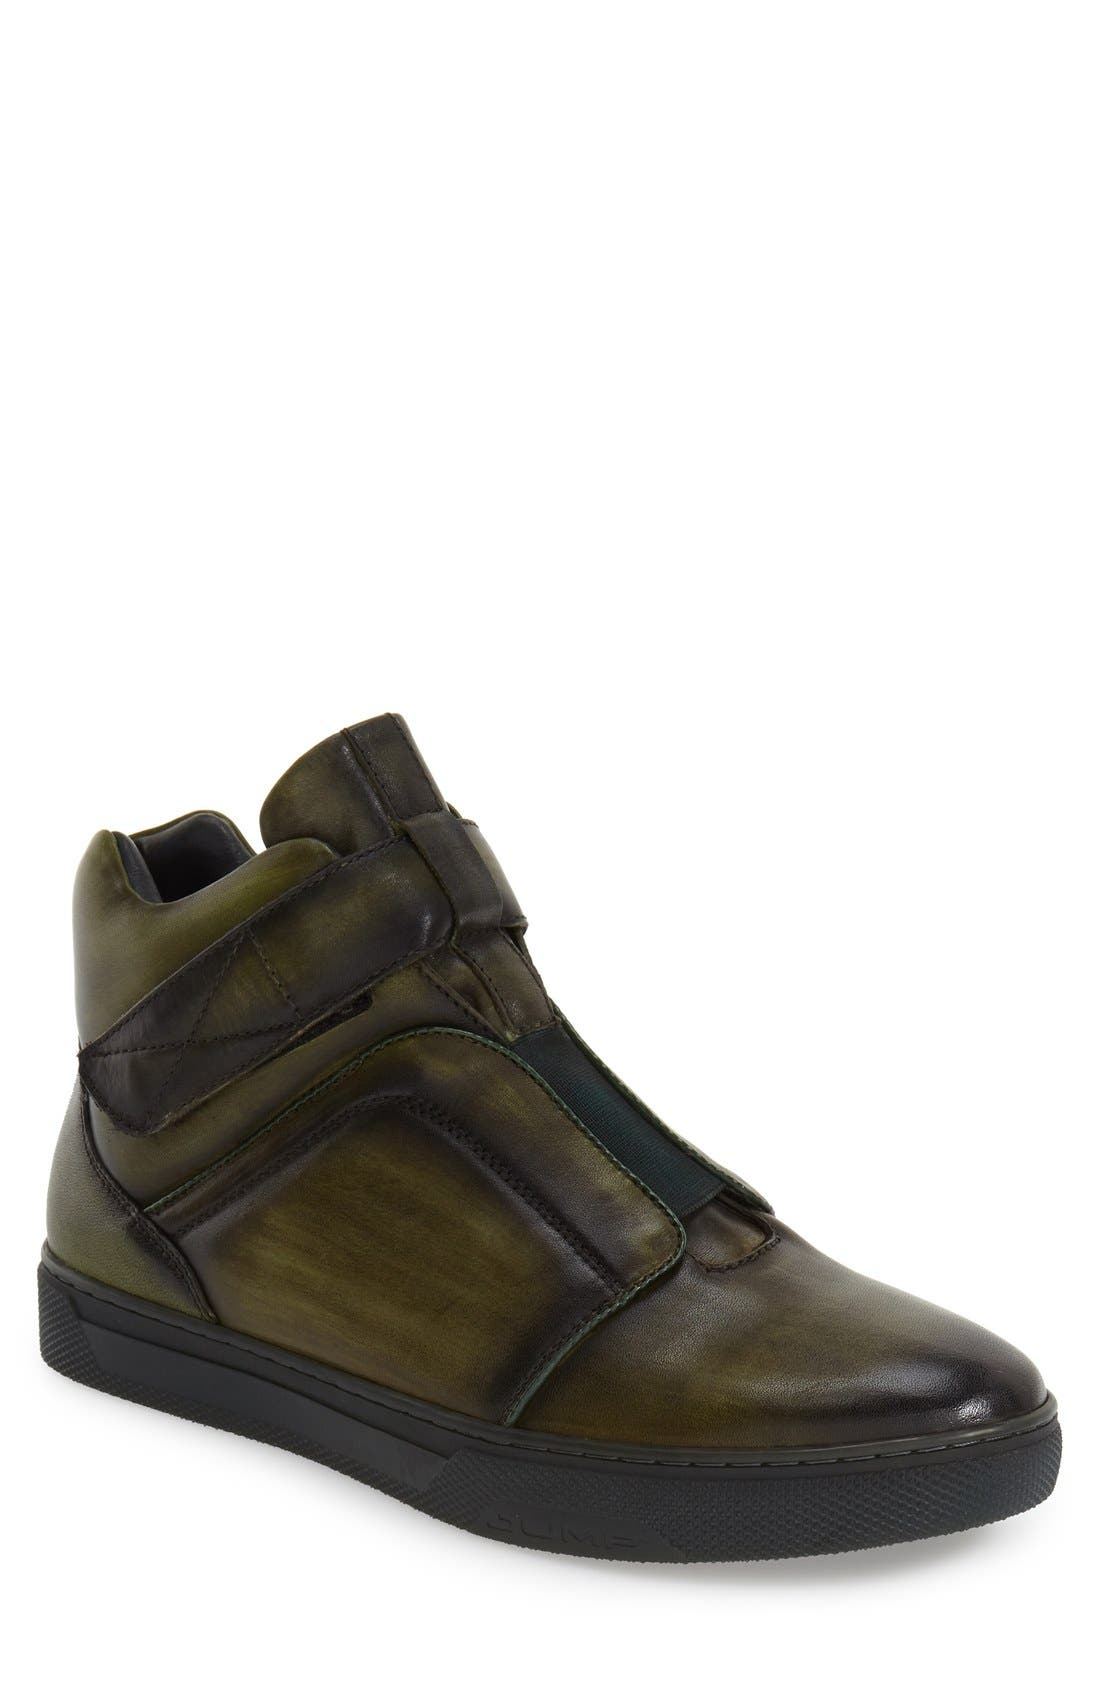 Jump Scully High Top Sneaker, Green